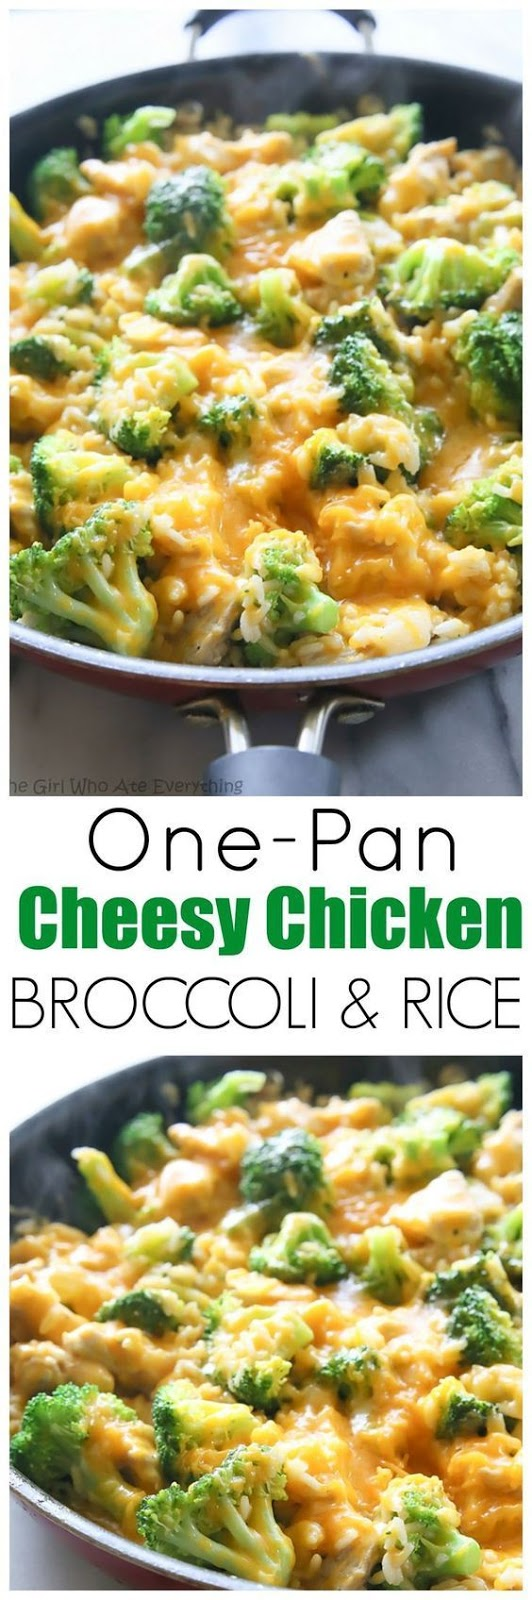 One-Pan Cheesy Chícken, Broccolí, And Ríce